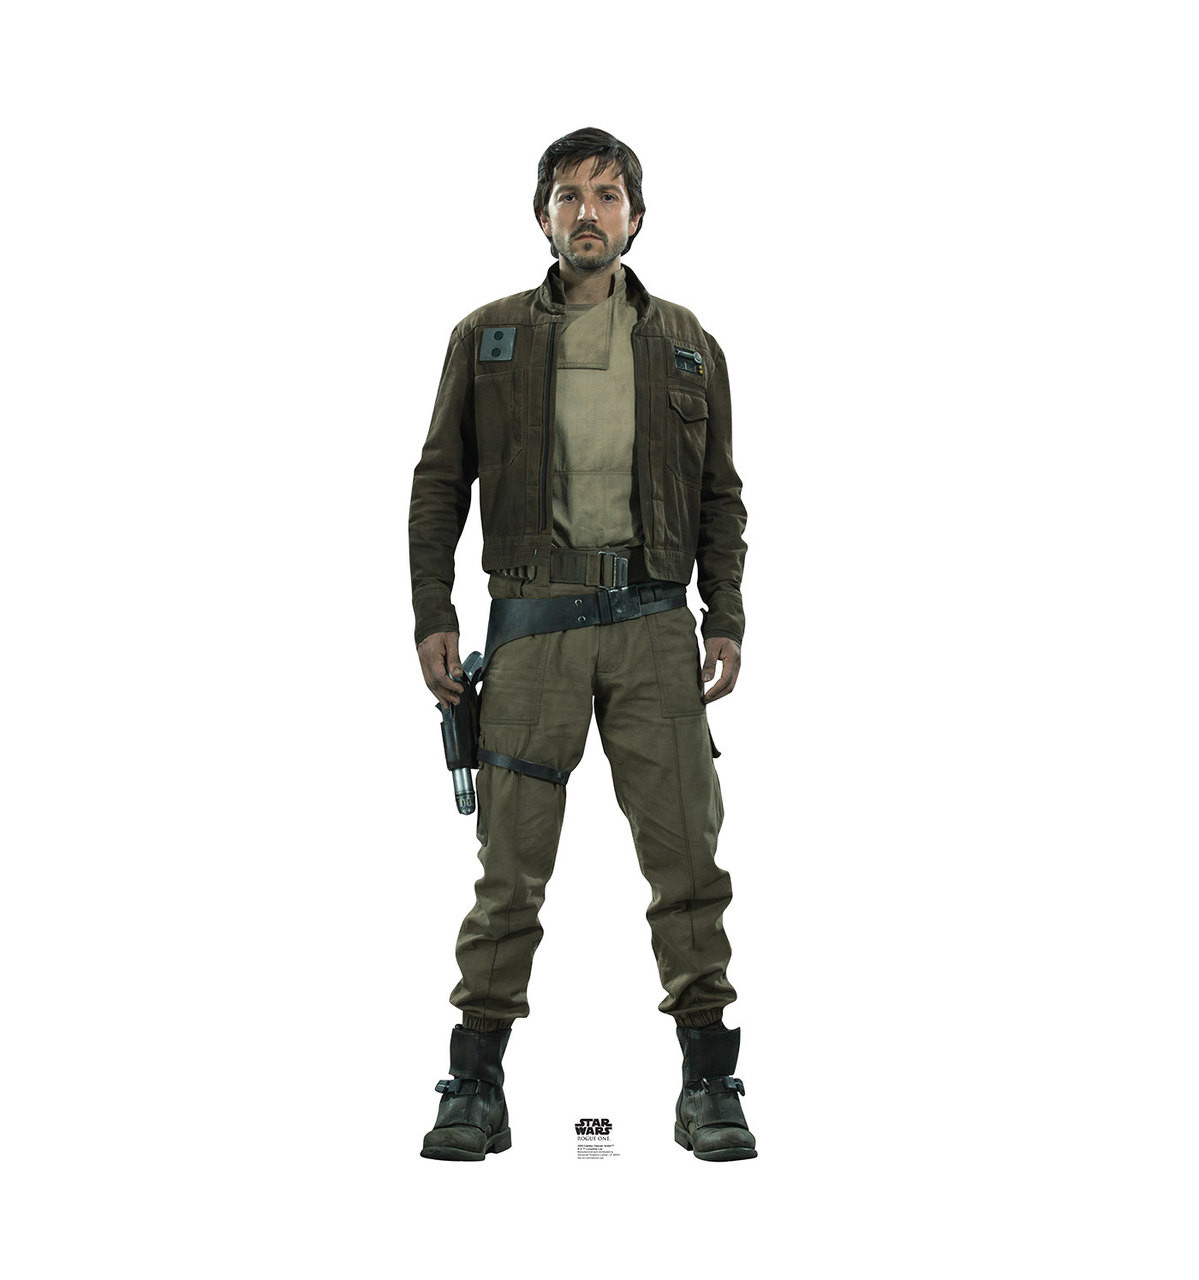 Captain Cassian Andor - Rogue One - Cardboard Cutout 2253